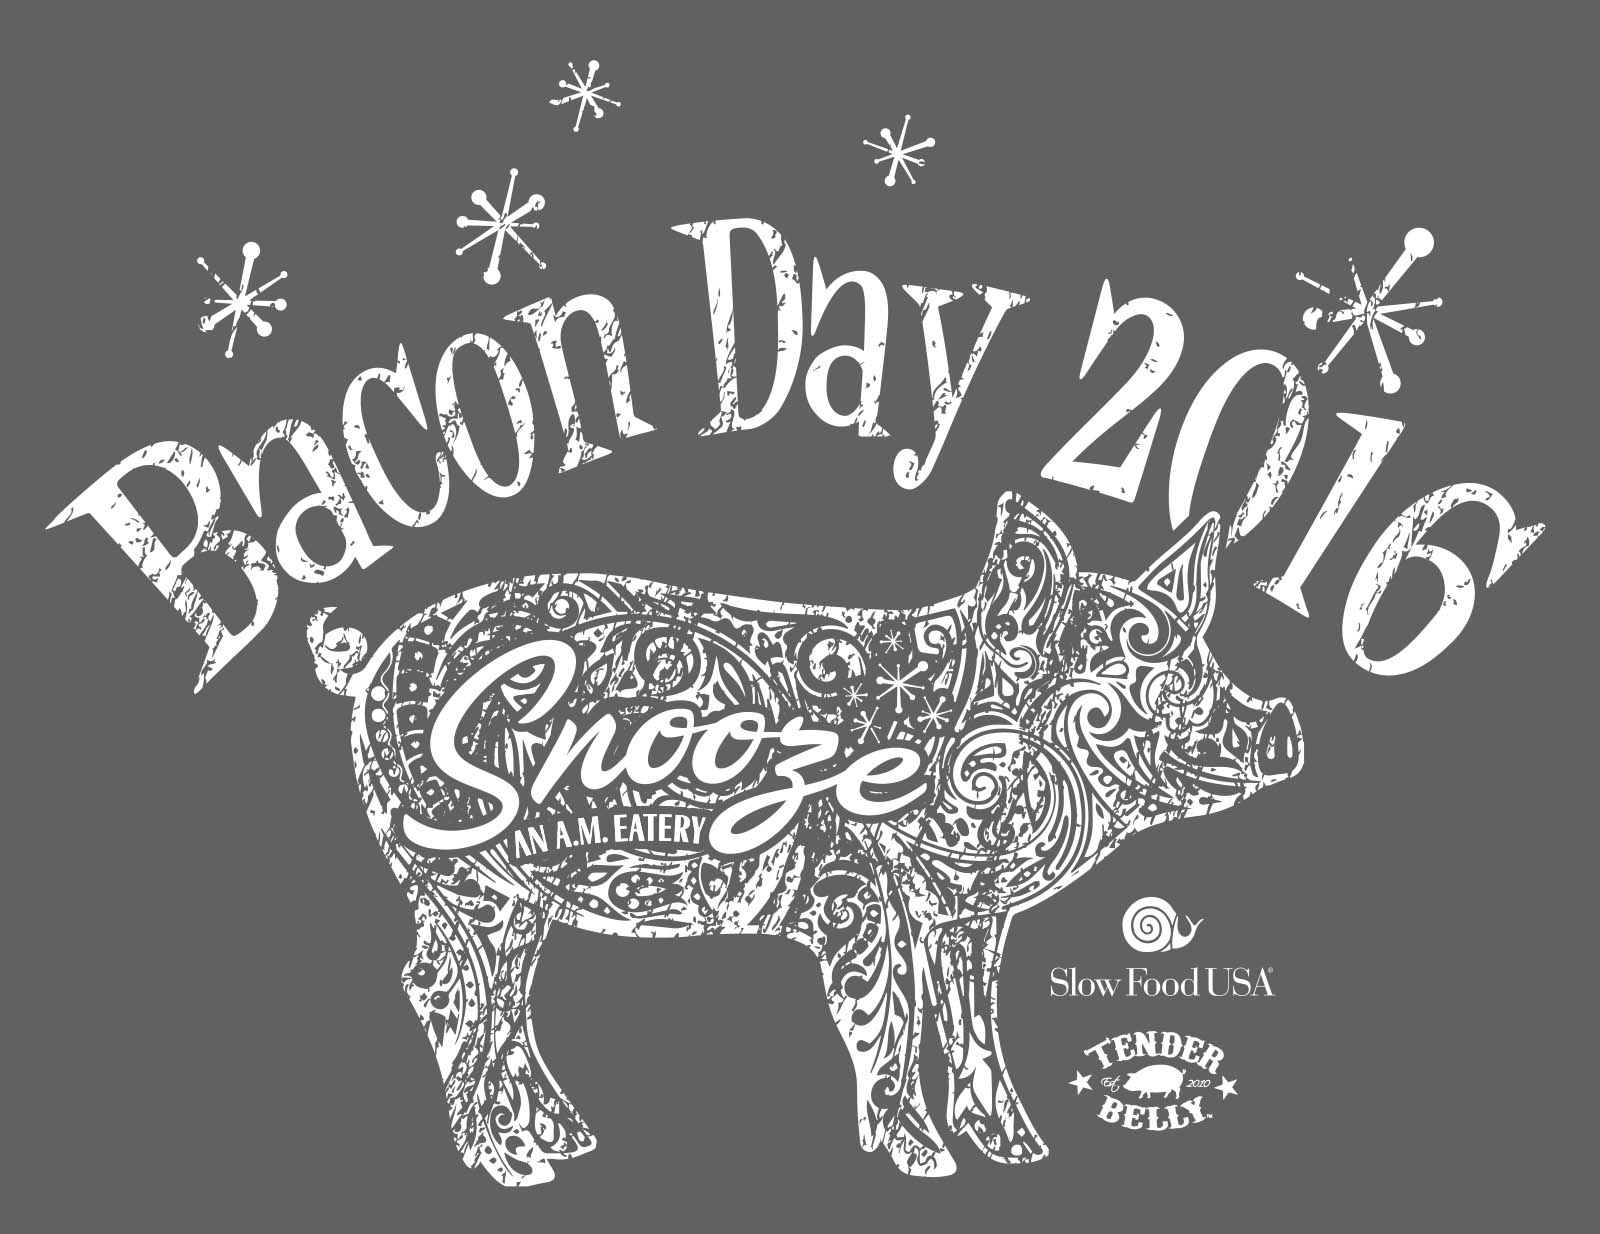 BACONDAY2016-Wh